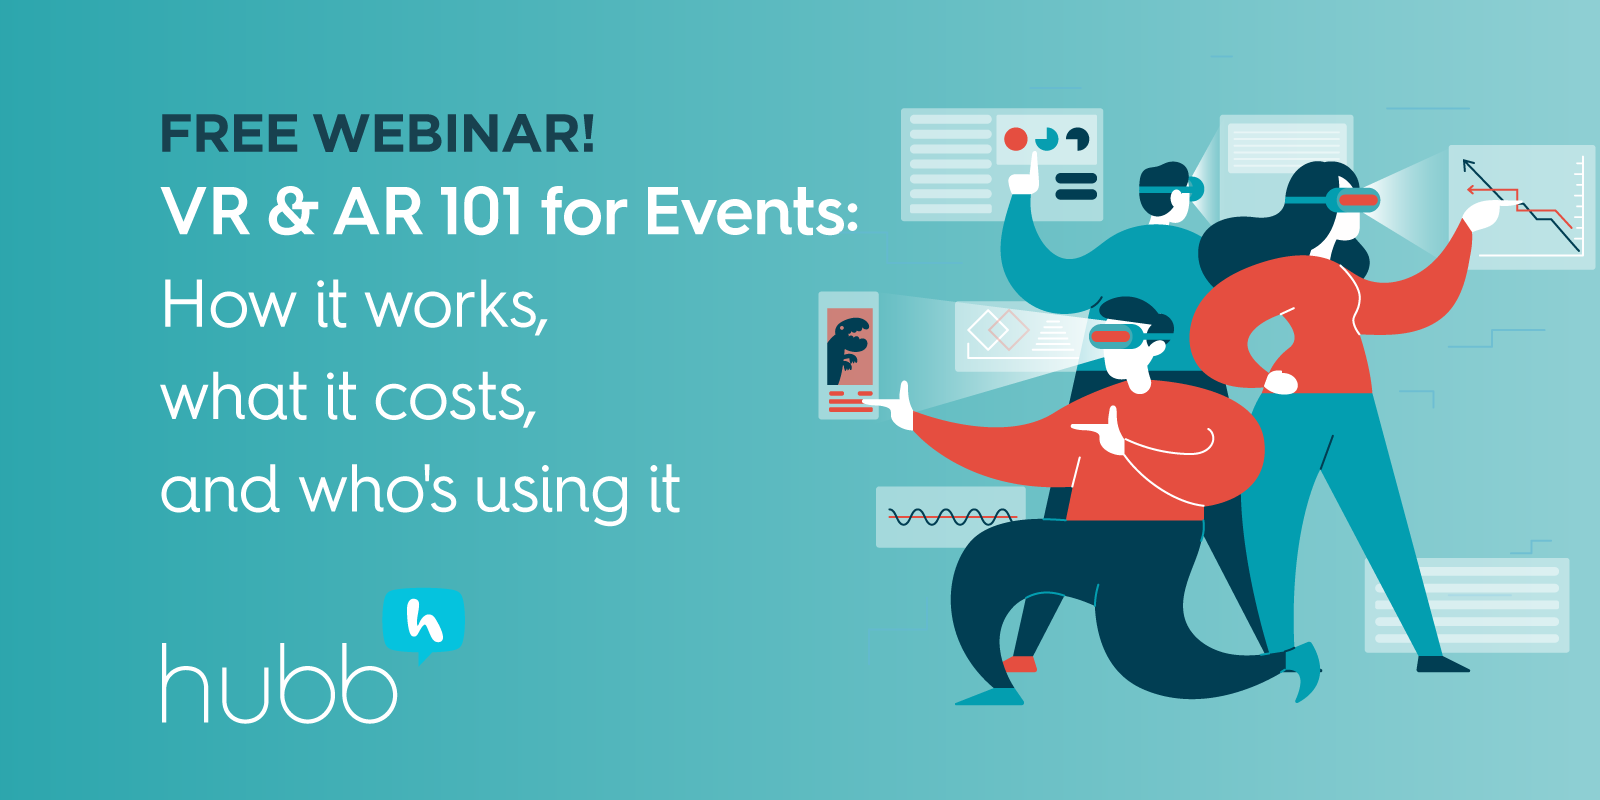 VR-&-AR-101-for-Events-Webinar-Social-1-1